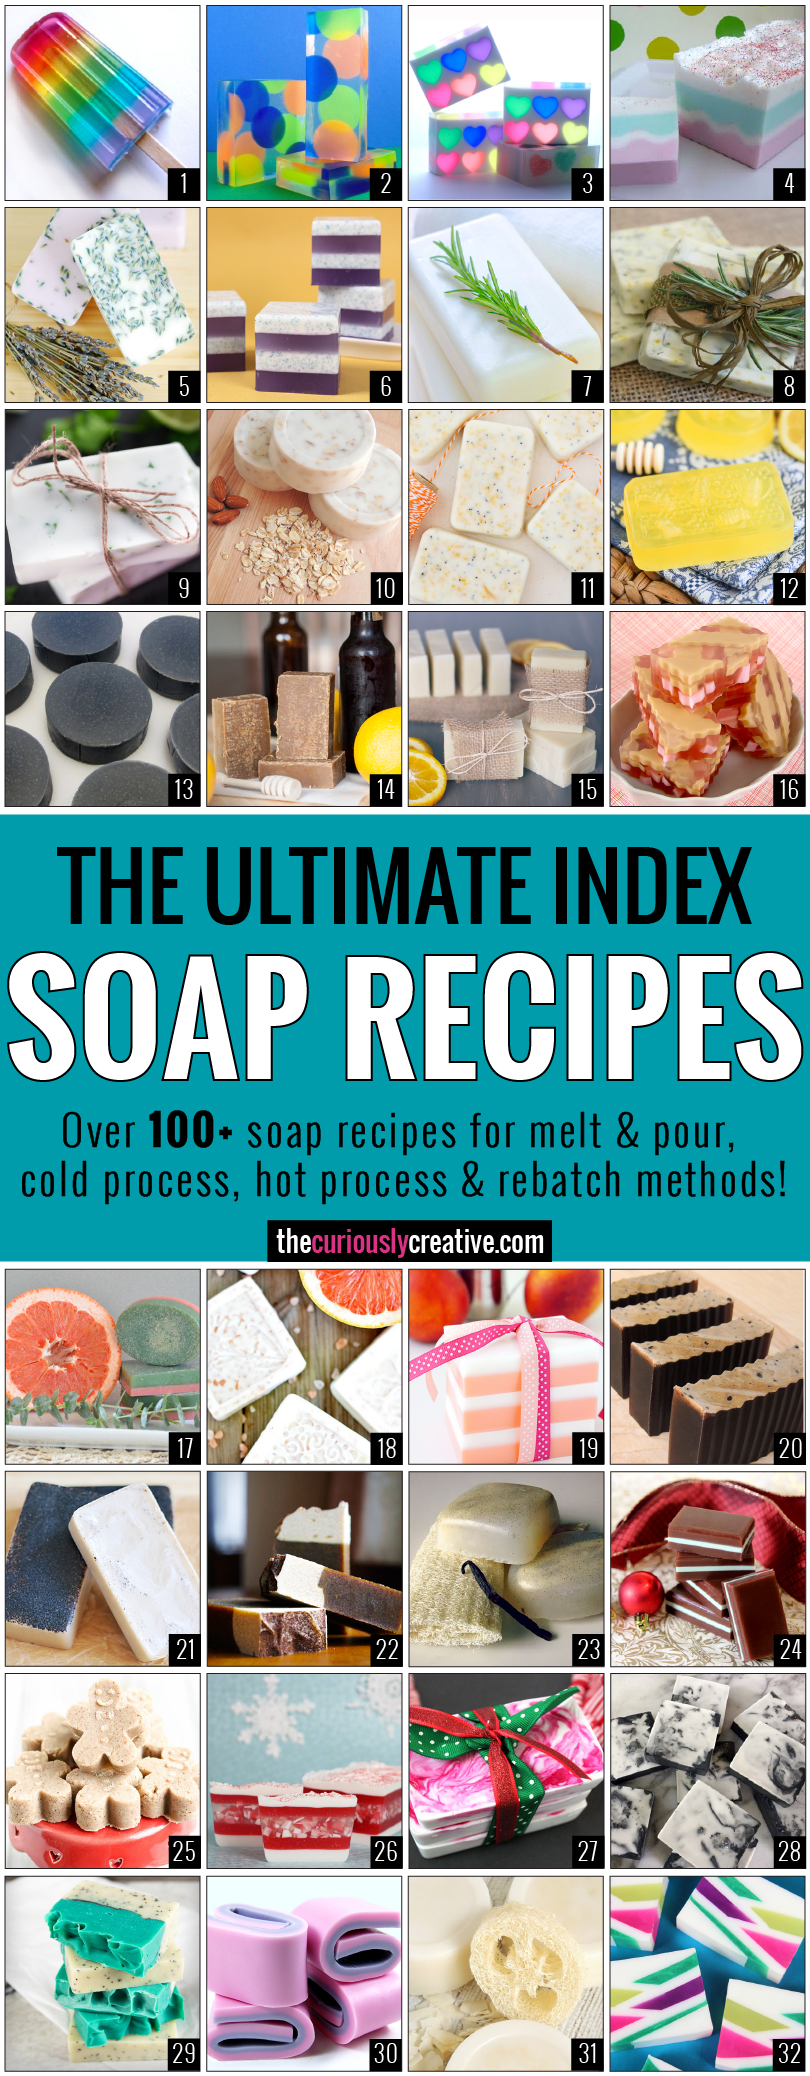 The Ultimate Soap Recipe Index - The Curiously Creative